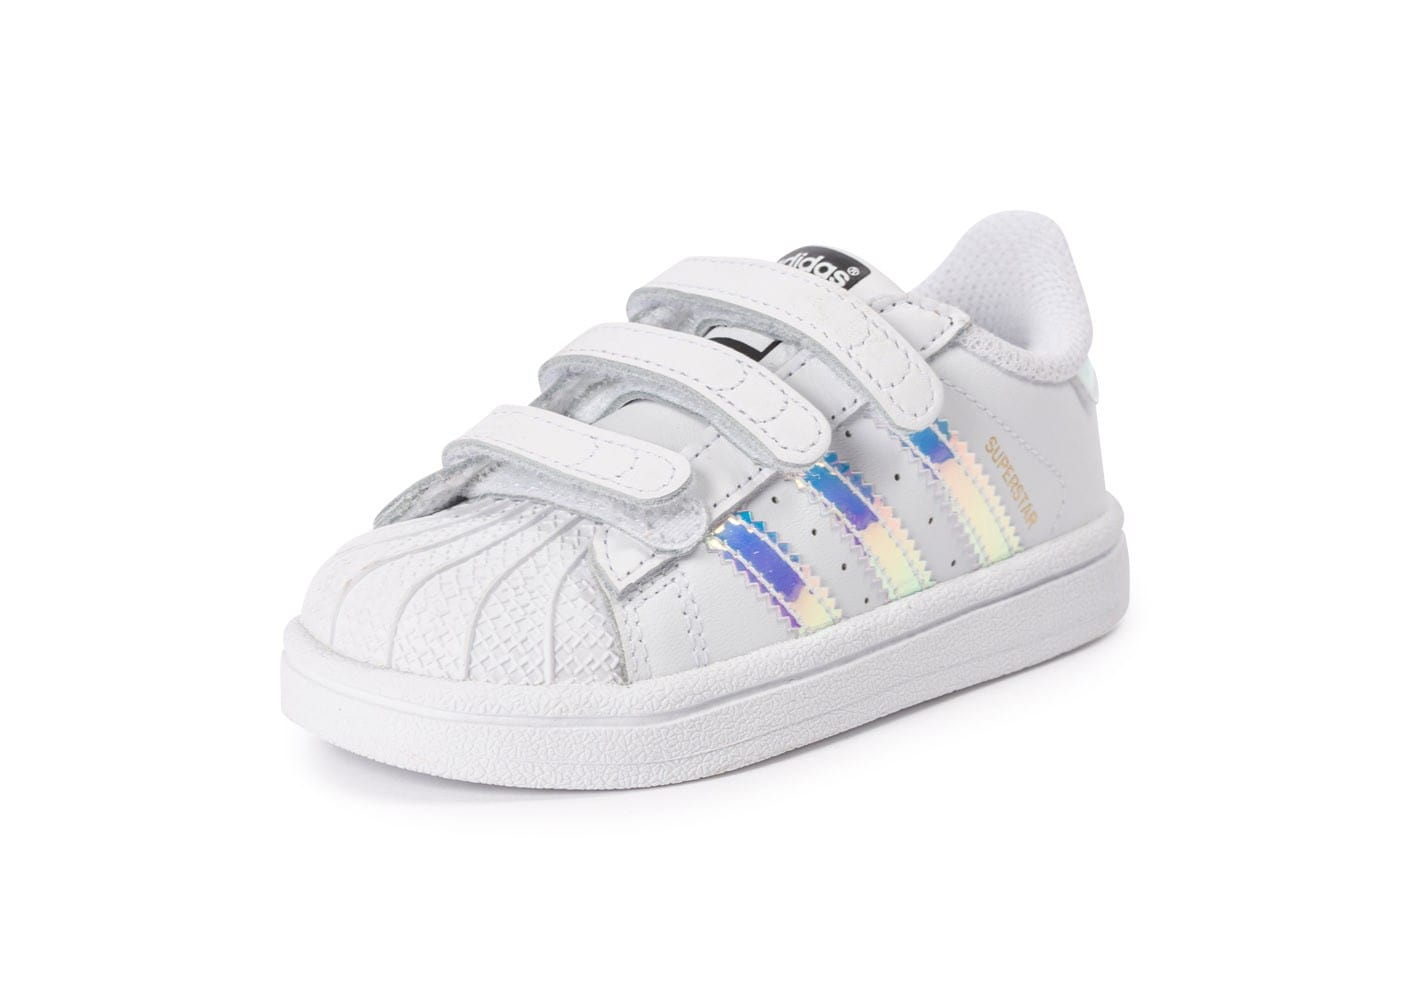 Adidas Superstar Bébé Fille cohen-investigation.